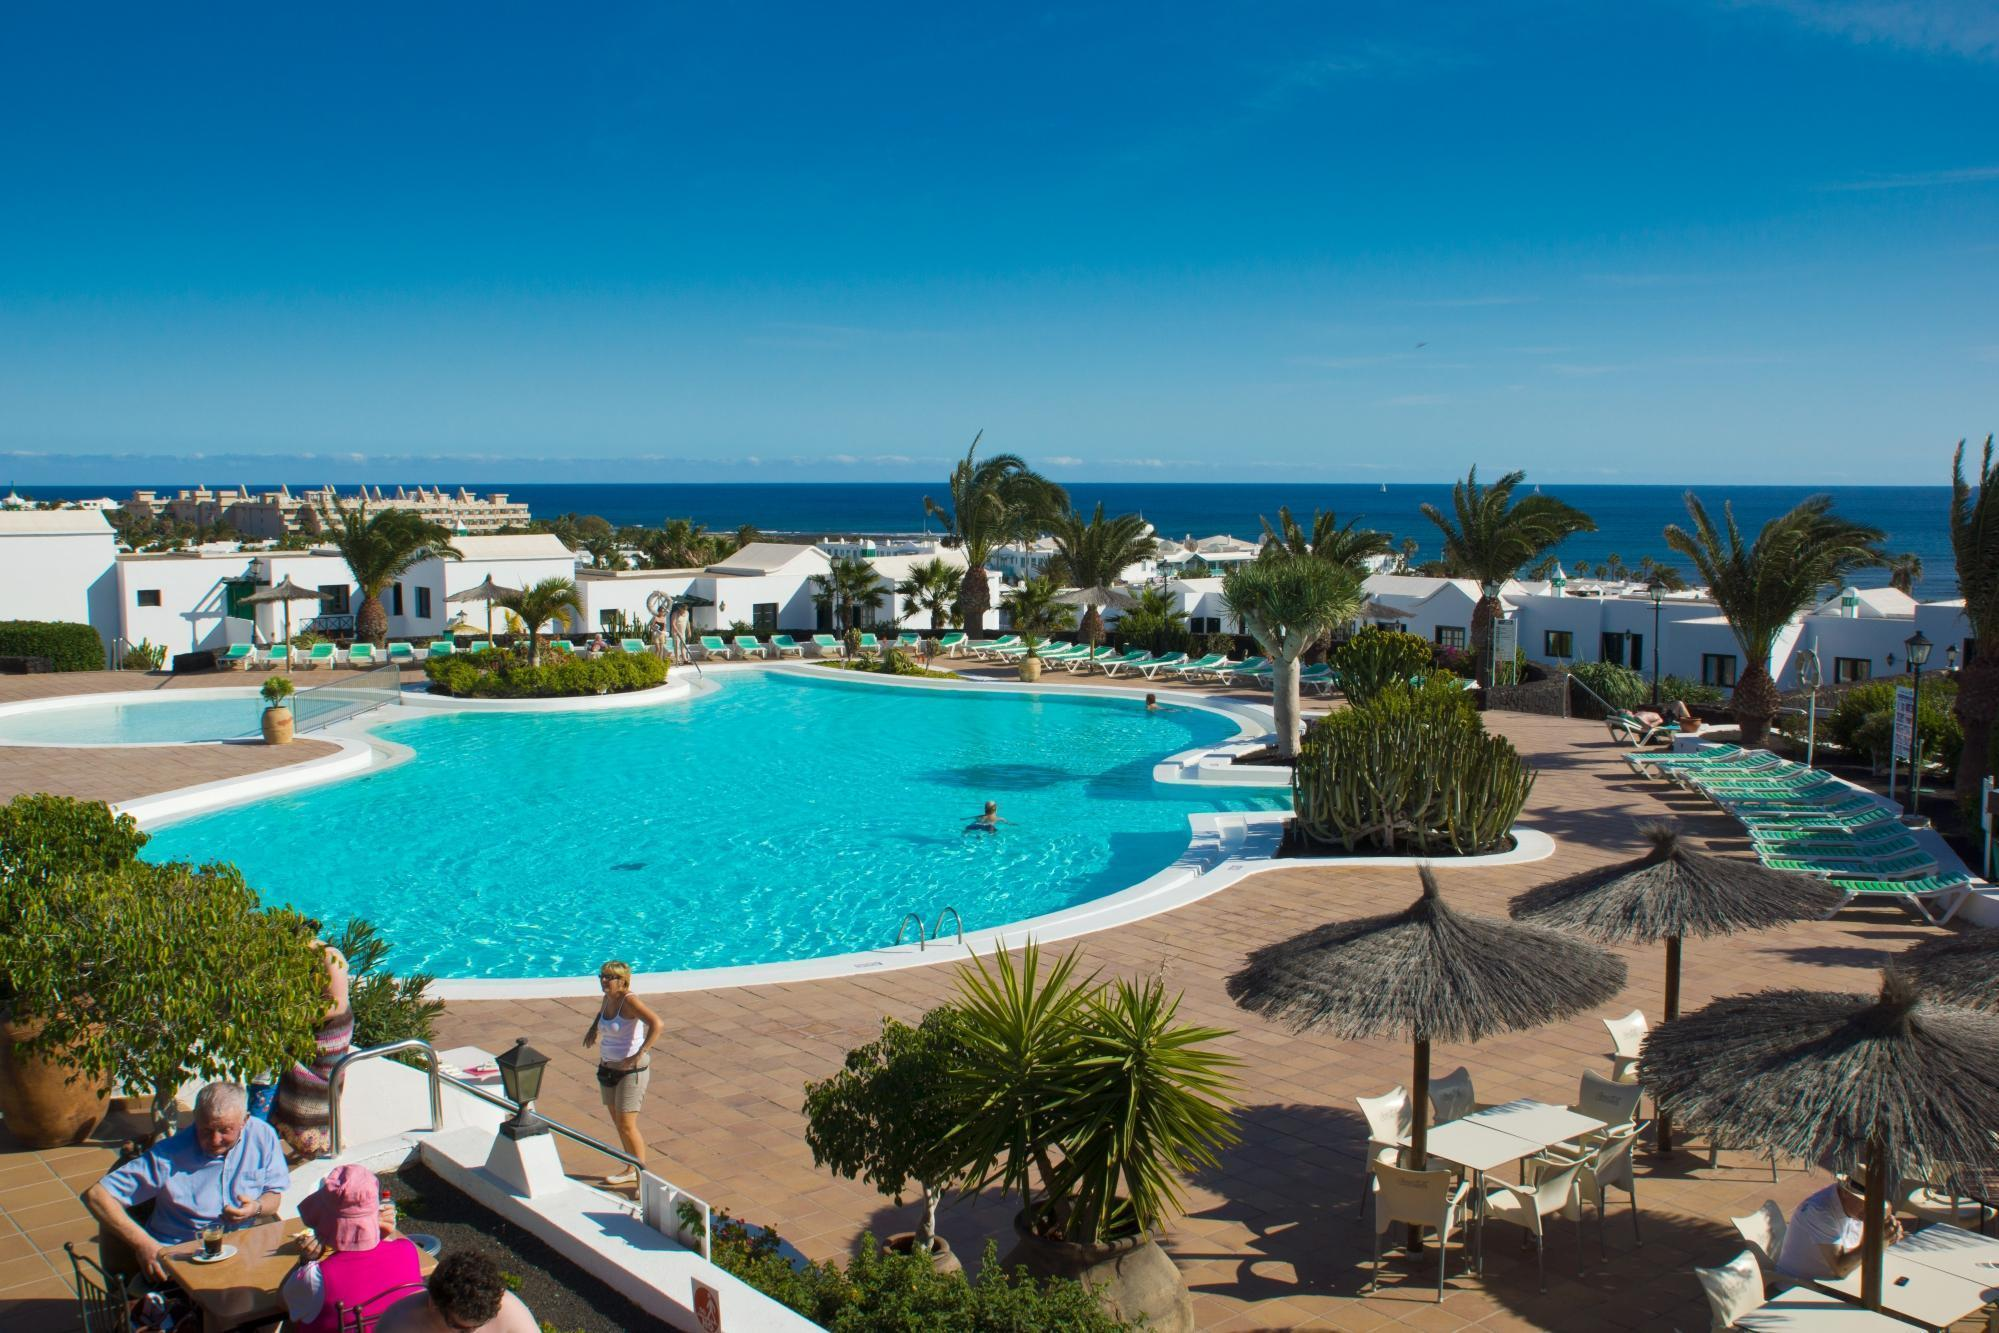 """Set amongst 13 acres of lush gardens, Costa Sal is less than 10 minutes from Arrecife Airport.This clean, spacious and comfortable resort is the ideal place for families, with homely suites, good service and a relaxed atmosphere. Visit <a href=""""http://www.costasal.com/eng/index.php?id=IN"""" target=""""_blank"""">costasal.com</a> for more."""